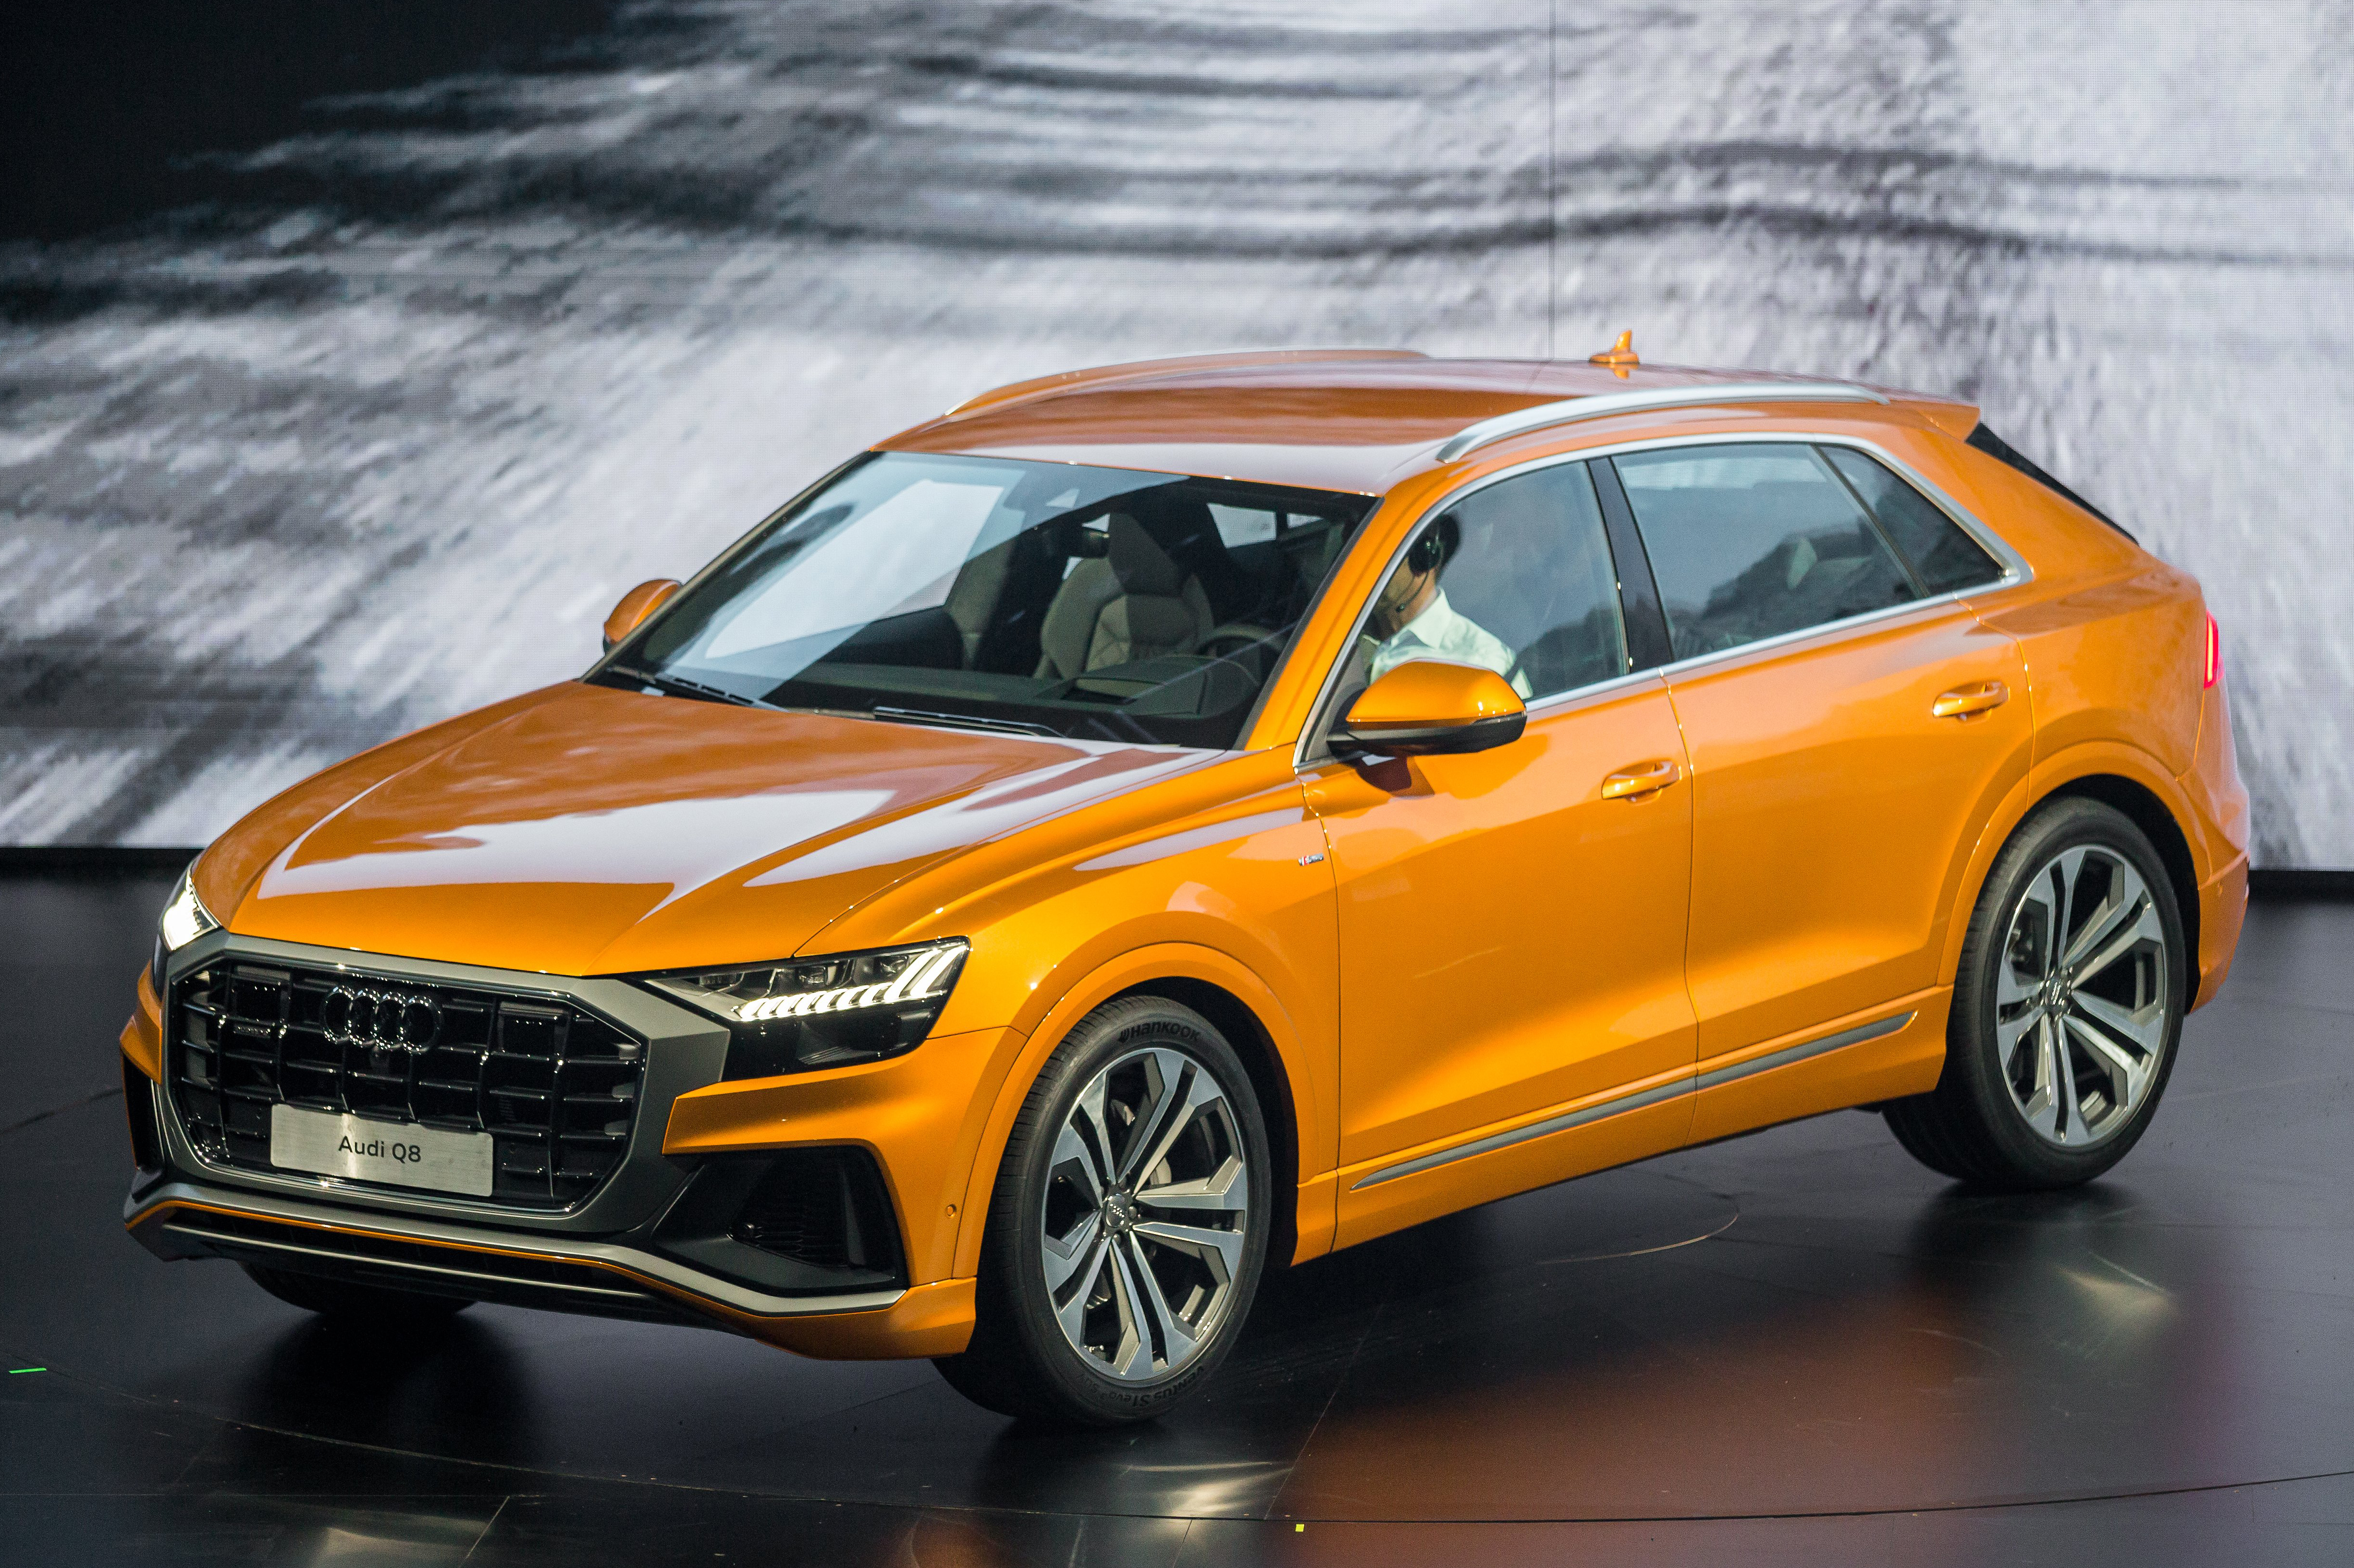 Audi Q8 Suv Range Rover Sport And Bmw X6 Rival Launched Autocar